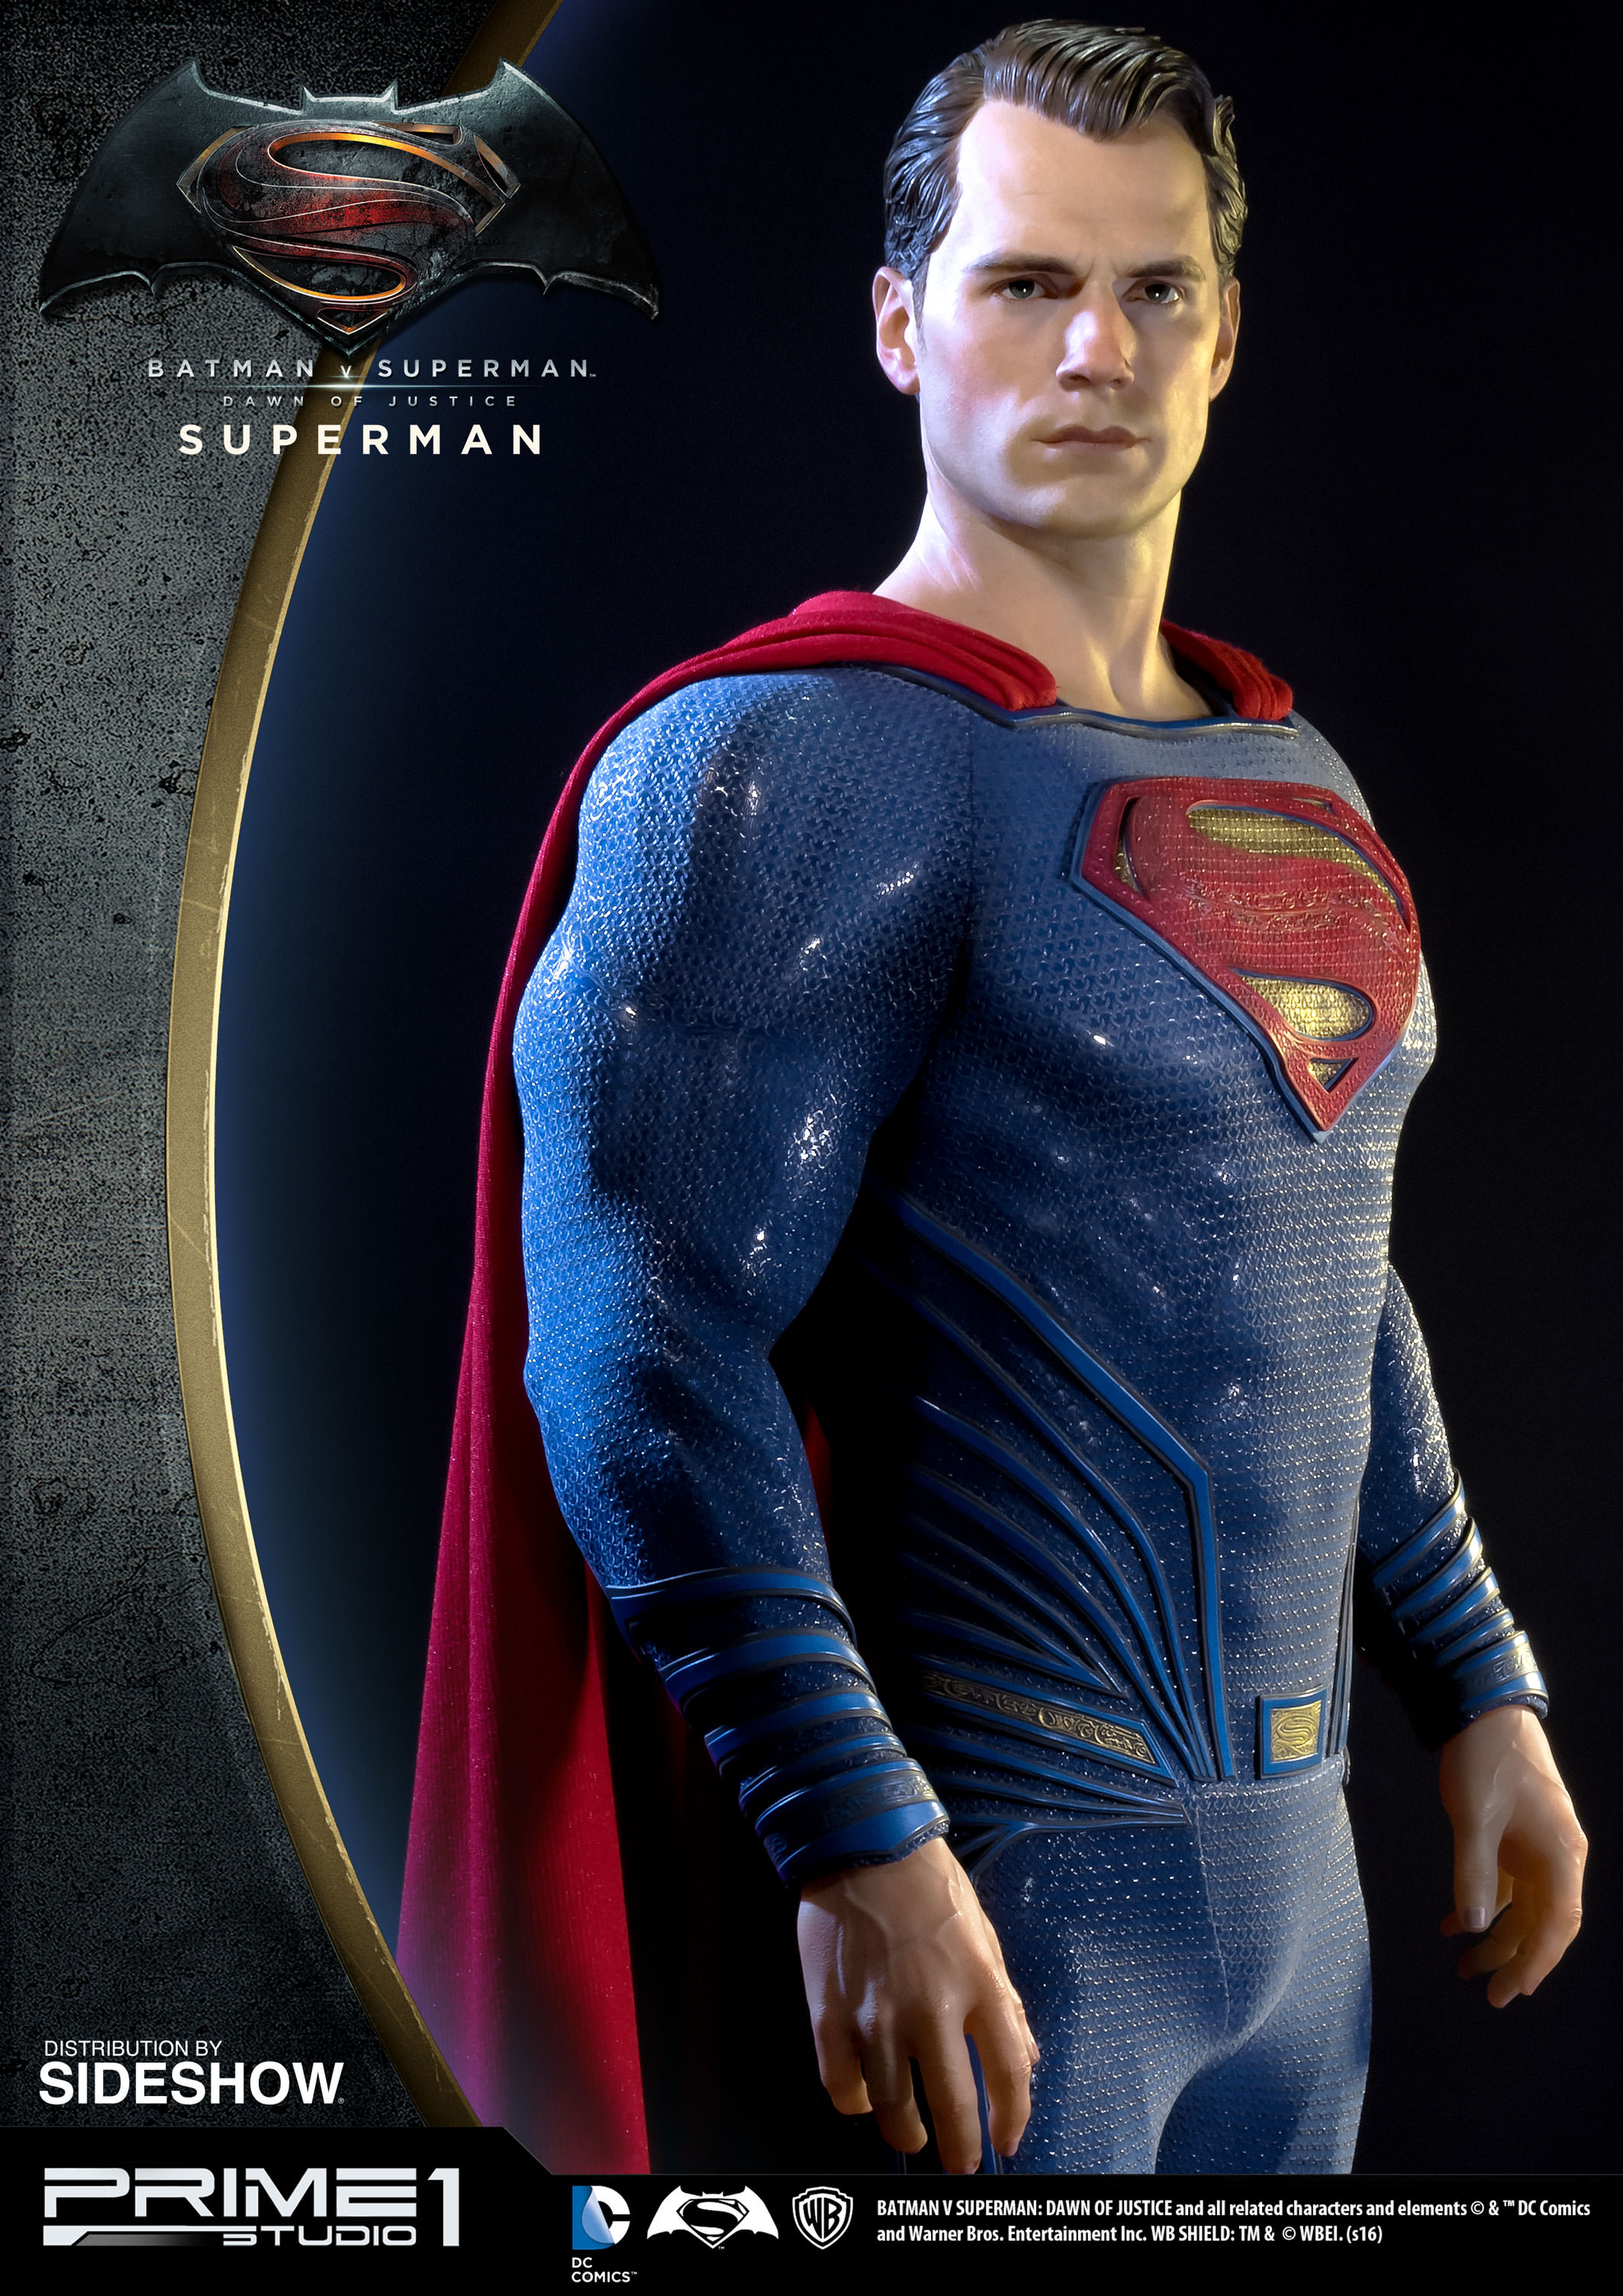 Superman Statue from Batman v Superman by Prime 1 Studio